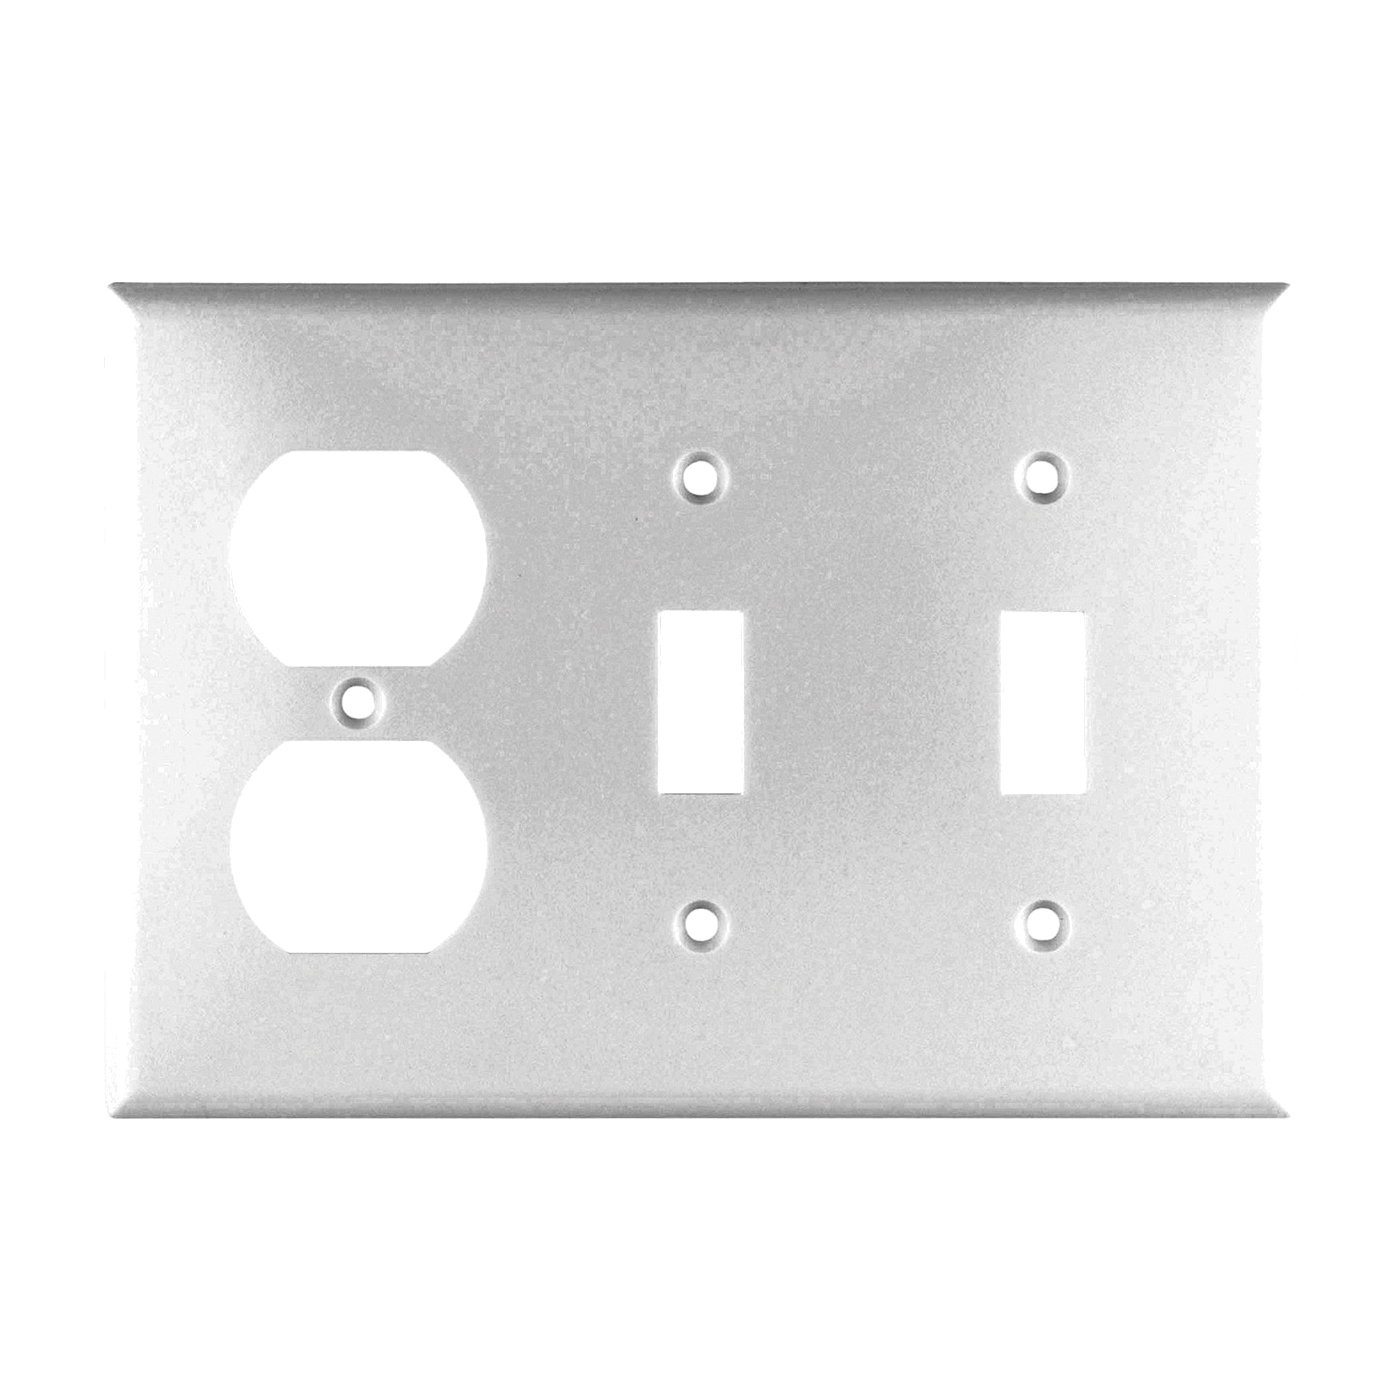 Picture of Eaton Wiring Devices 2158W-BOX Wallplate, 4-1/2 in L, 6-3/8 in W, 3-Gang, Thermoset, White, High-Gloss